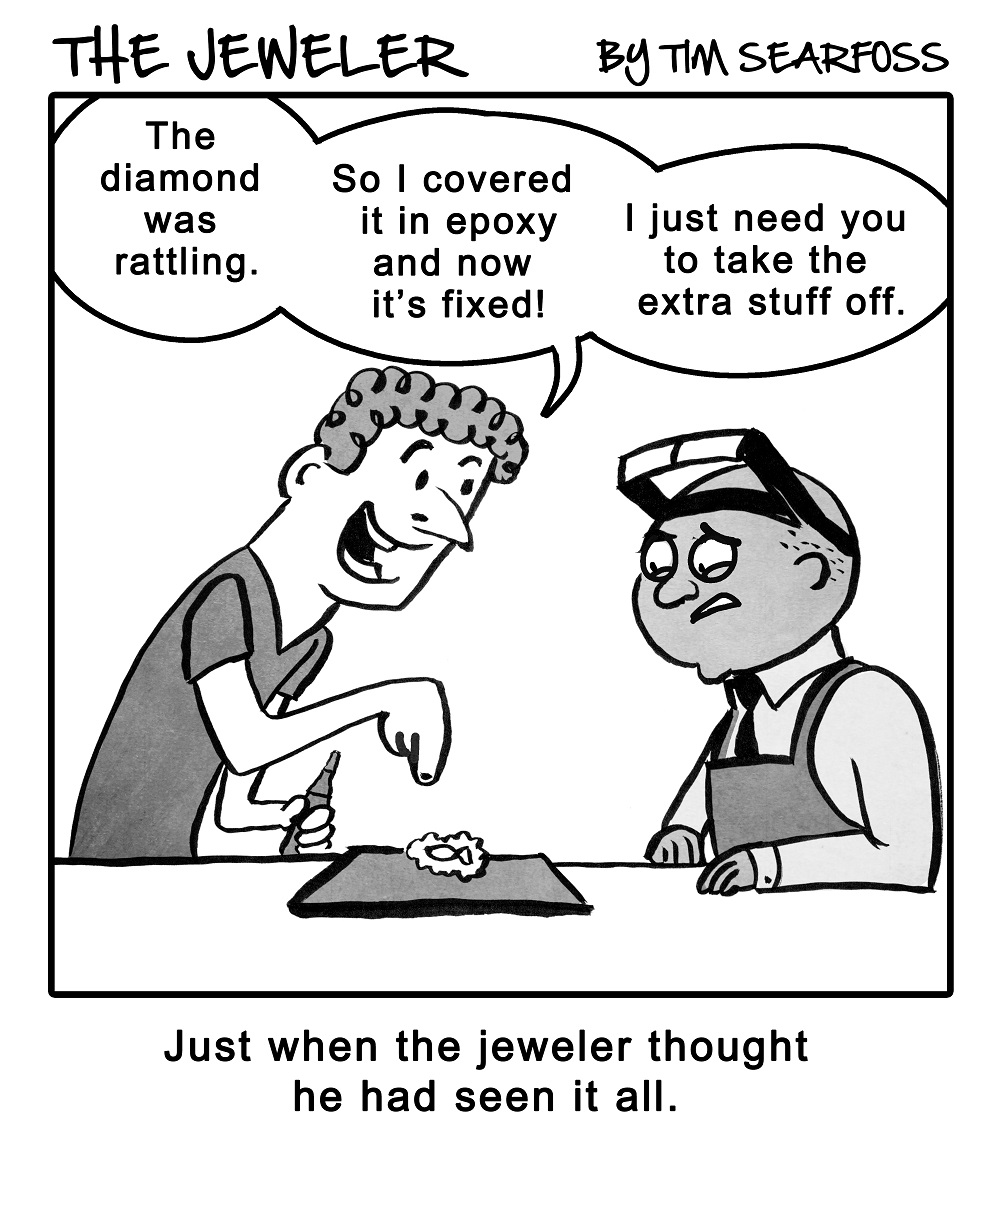 Cartoon: Here's Why DIY Jewelry Repair Is Not a Good Idea